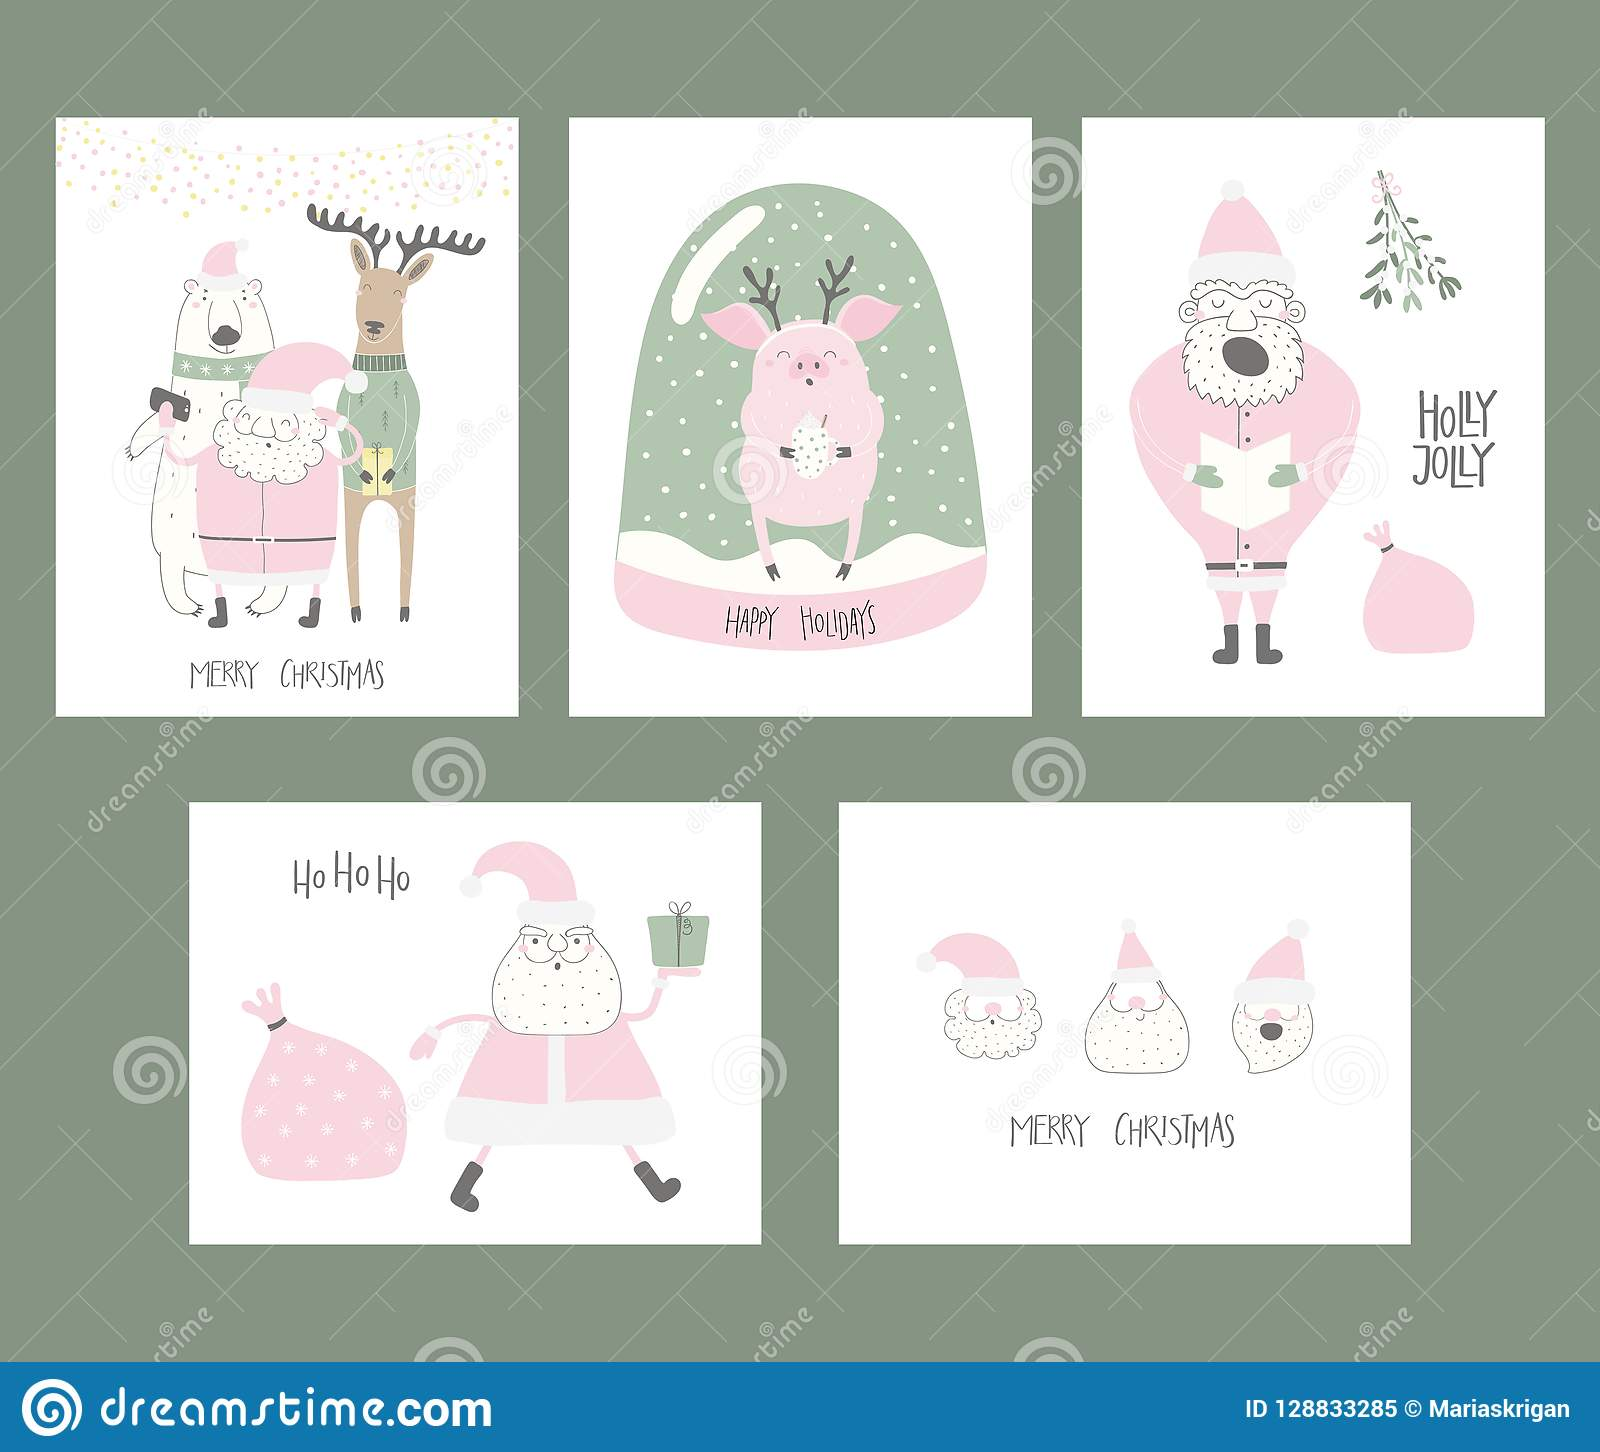 Cute Christmas Cards.Christmas Cards Collection Stock Vector Illustration Of